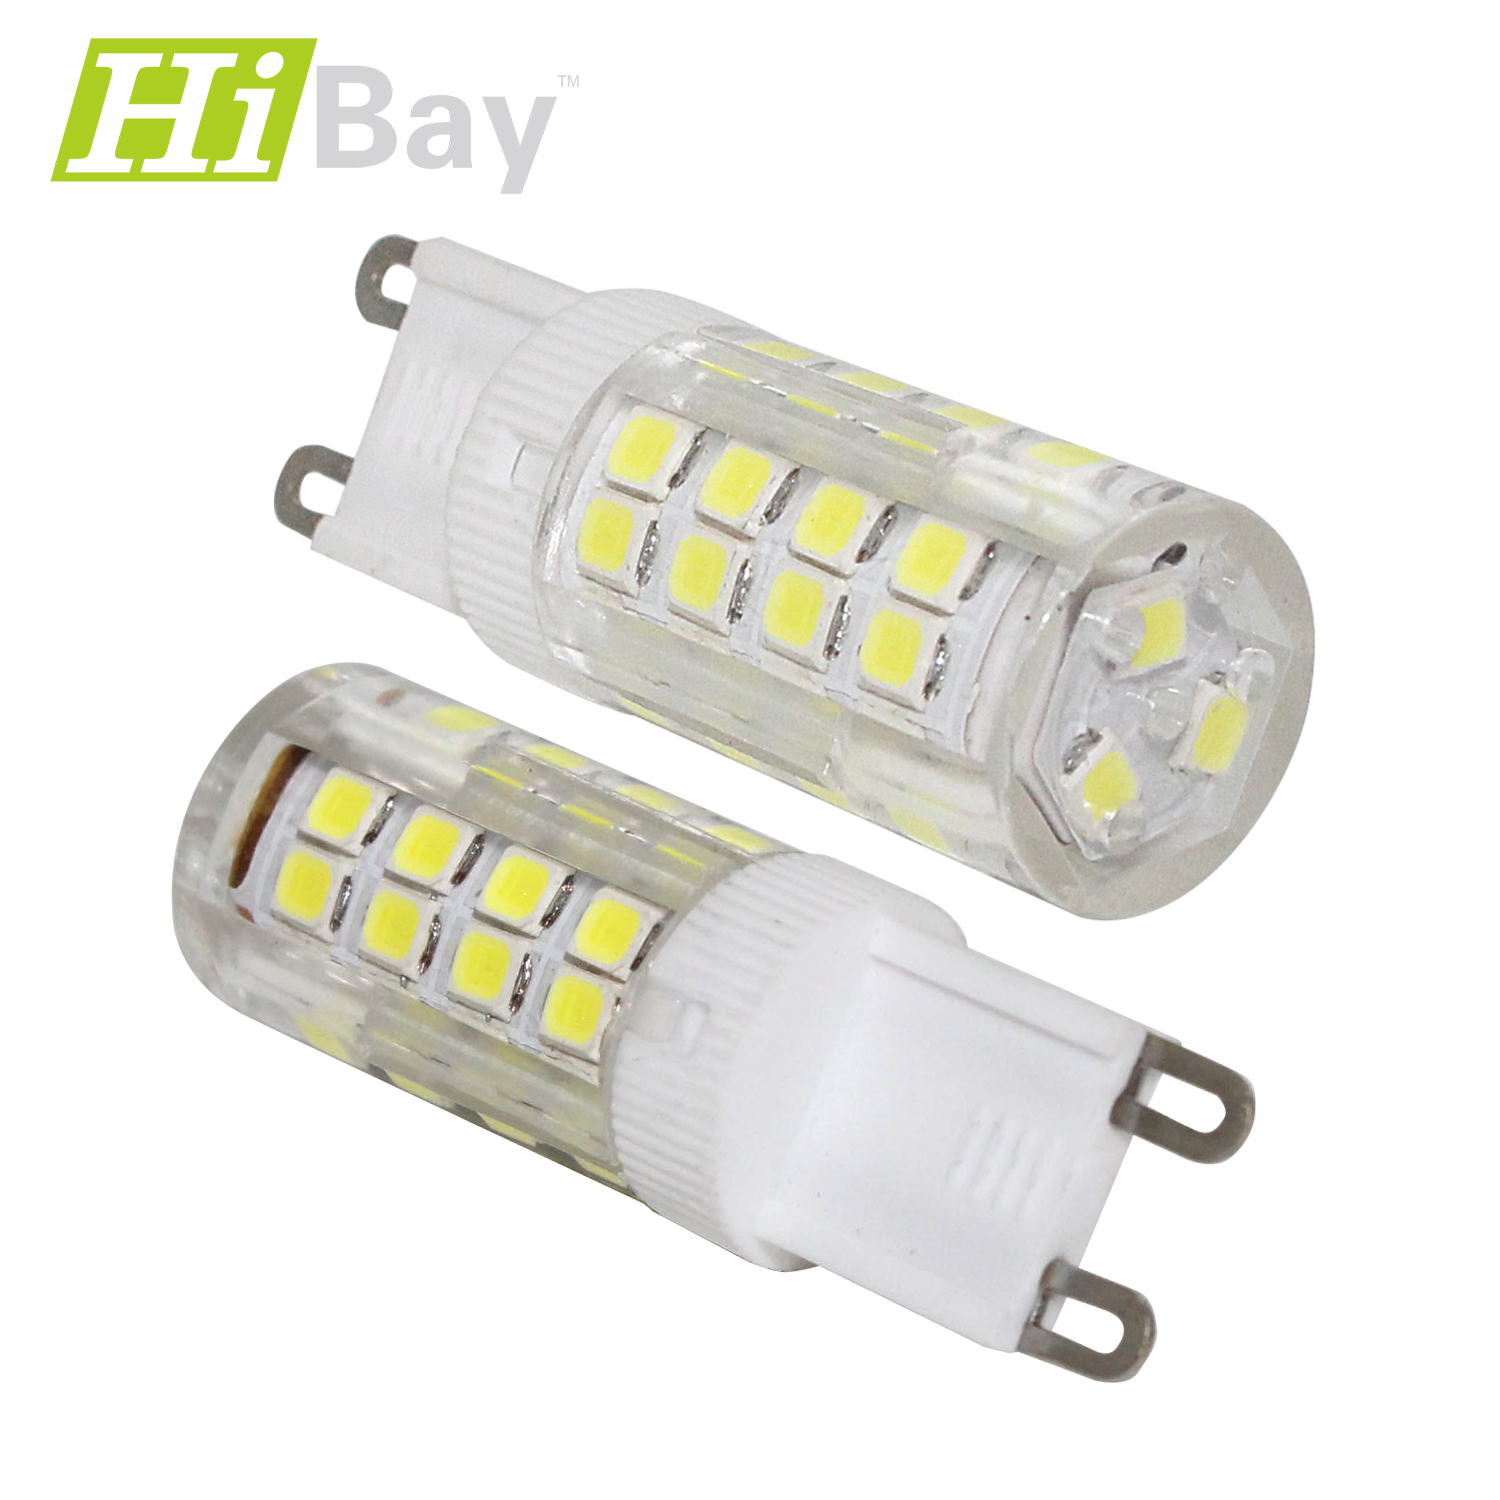 ceramic g9 5w led bulb 51smd 2835 capsule replace halogen warm cool ac220 240v ebay. Black Bedroom Furniture Sets. Home Design Ideas